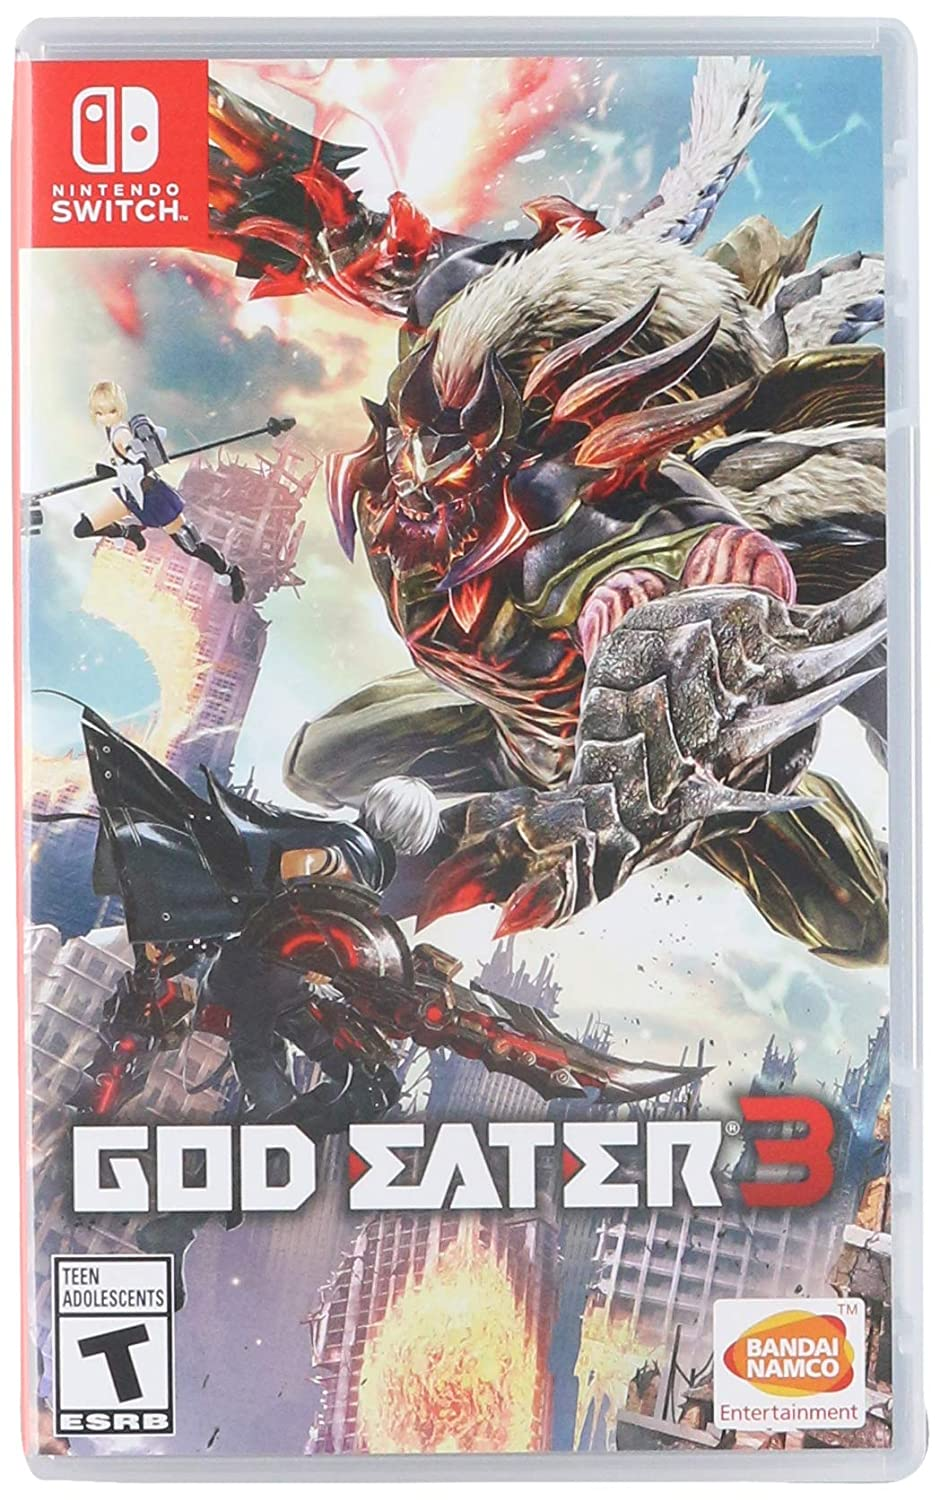 GOD EATER 3 for Nintendo Switch [USA]: Amazon.es: Bandai Namco Games Amer: Cine y Series TV